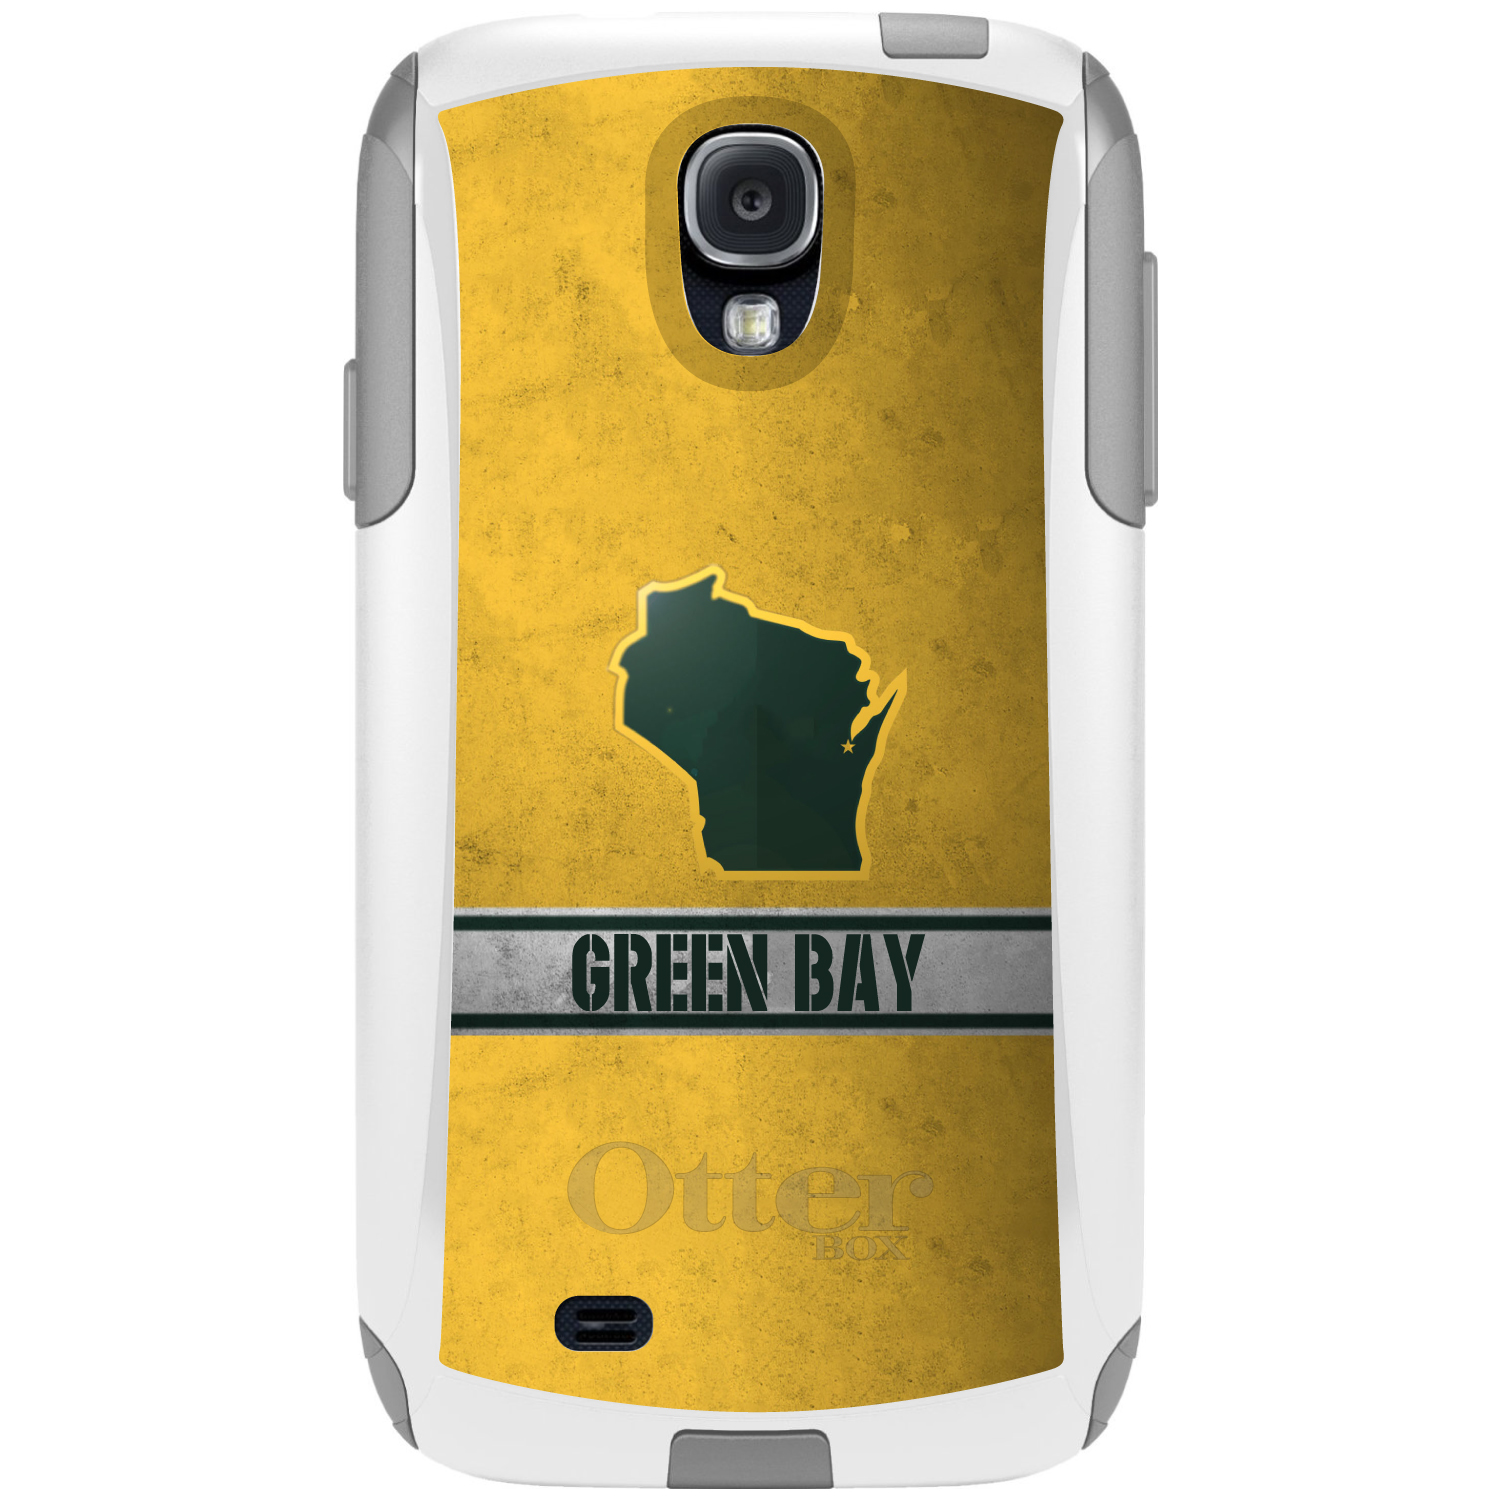 DistinctInk™ Custom White OtterBox Commuter Series Case for Samsung Galaxy S4 - Green Bay Wisconsin